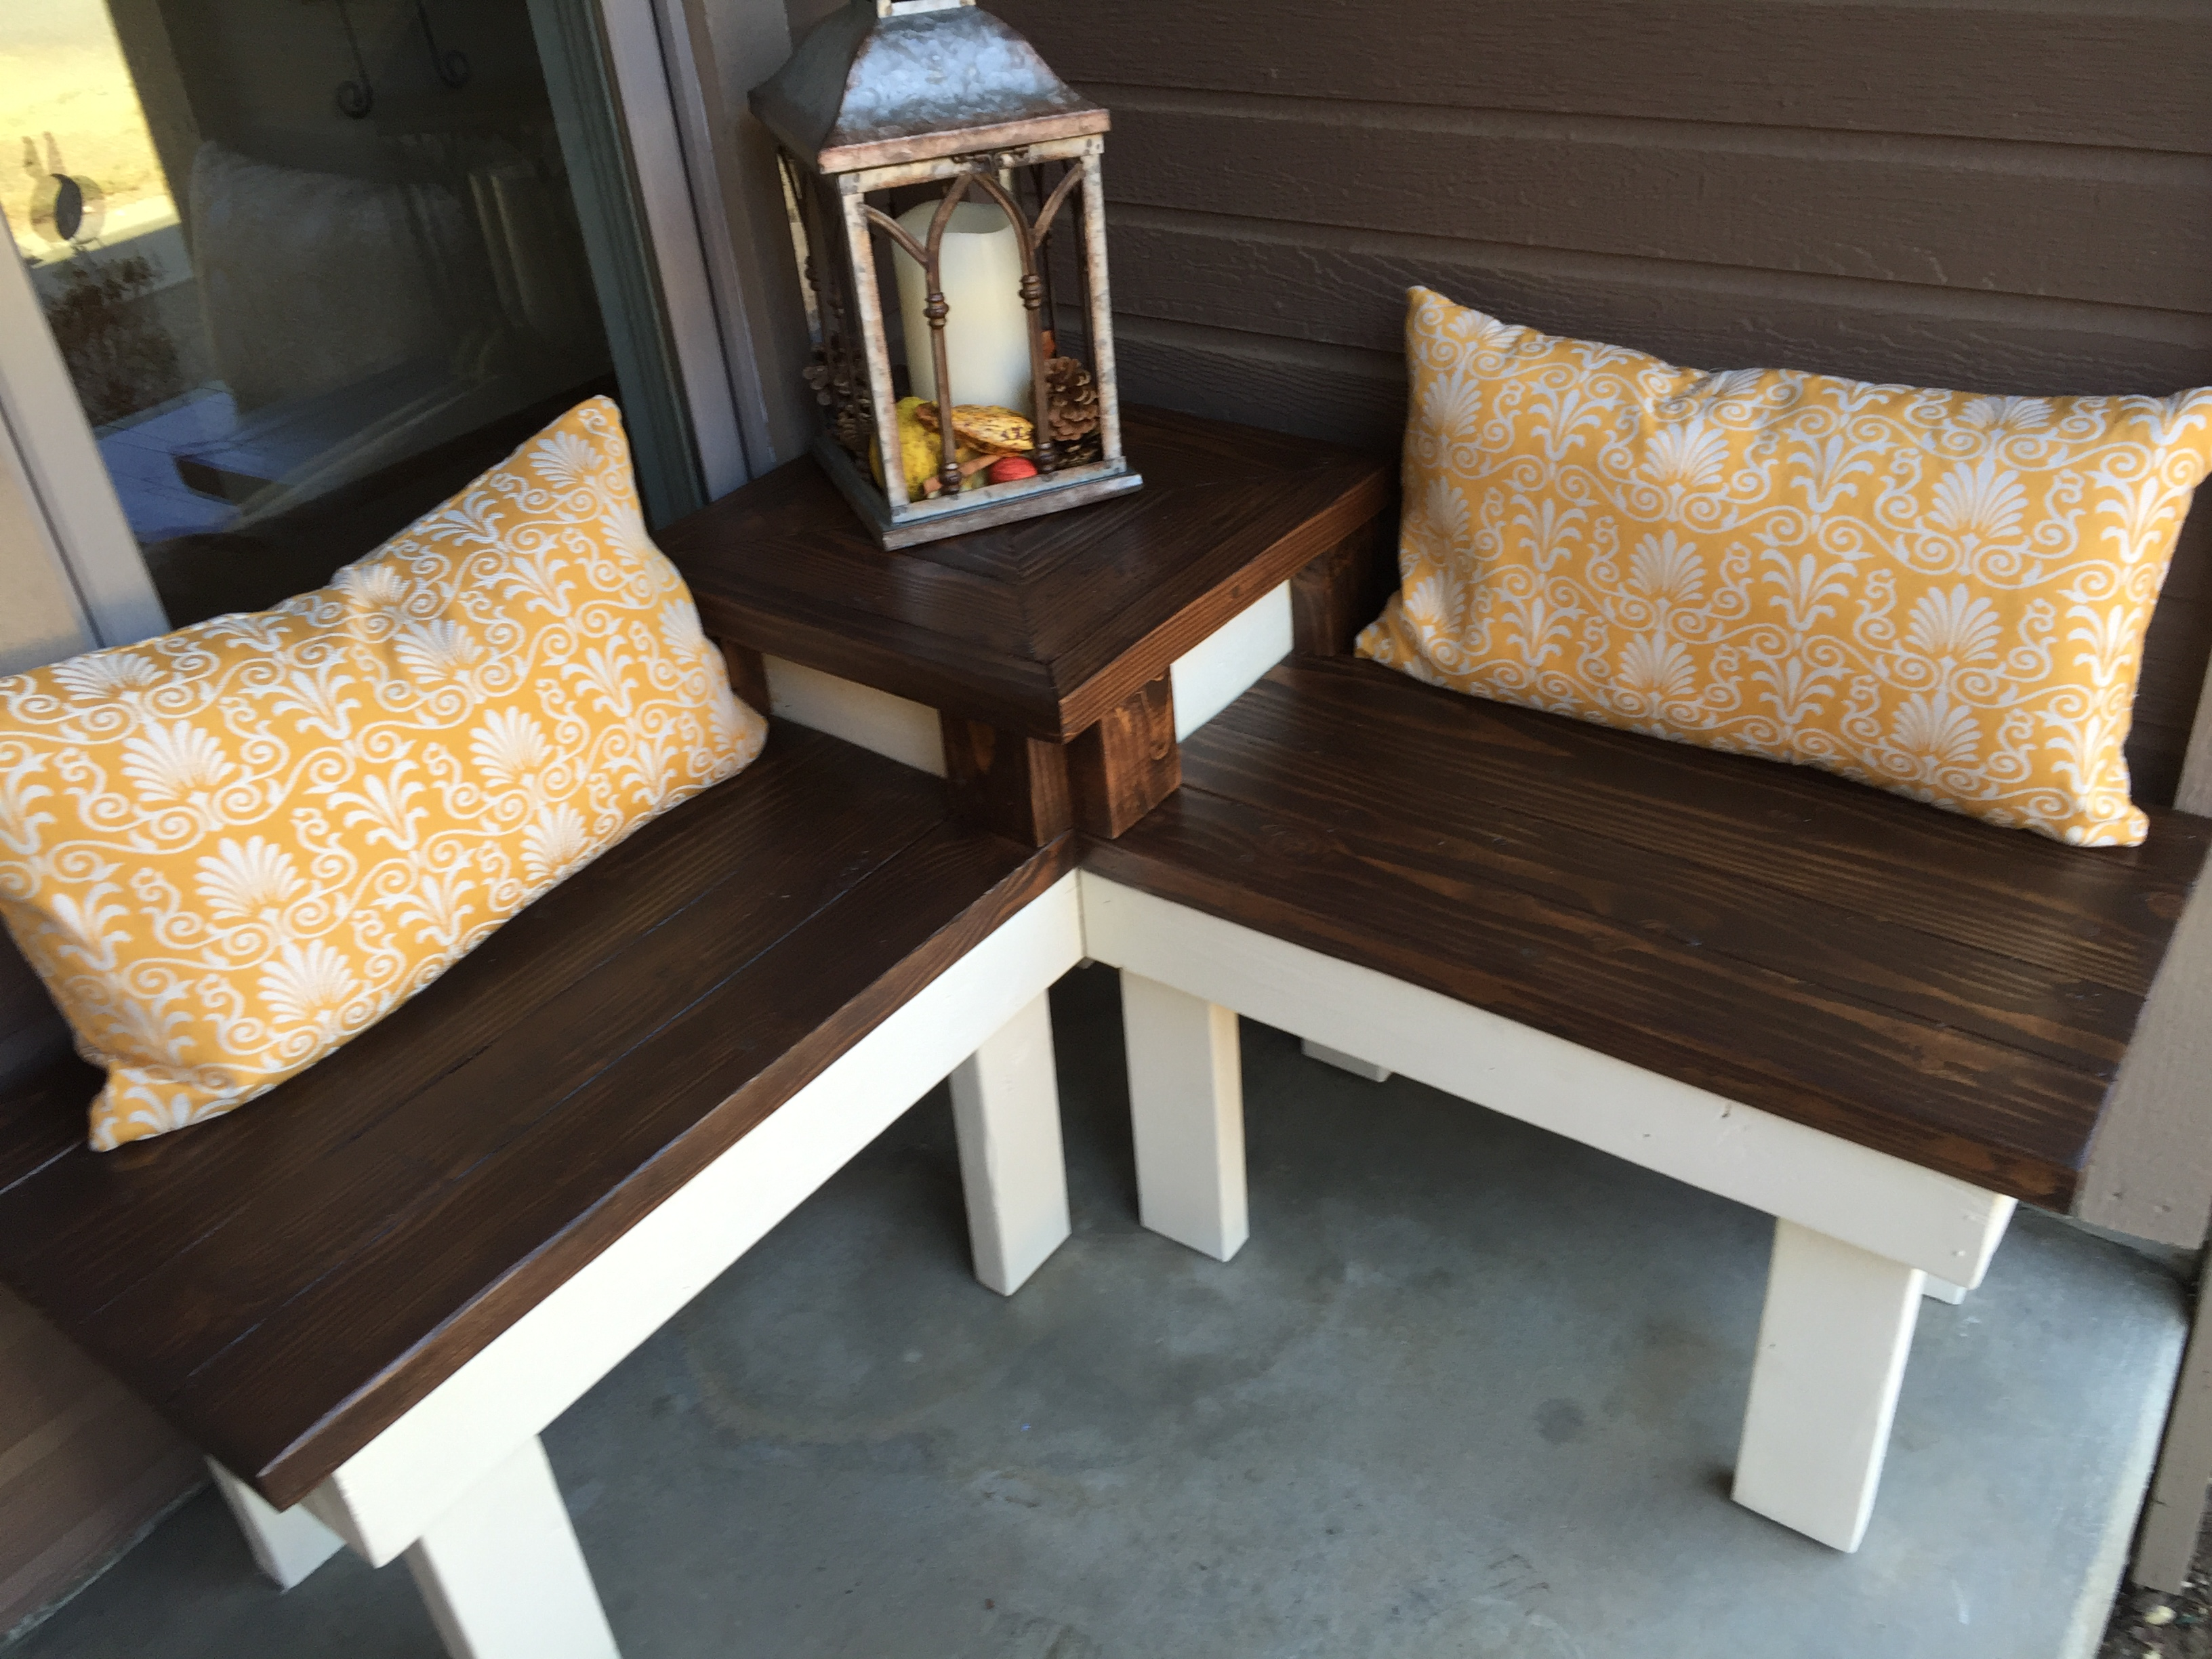 Marvelous Build A Corner Bench With Built In End Table For A Porch Or Patio,